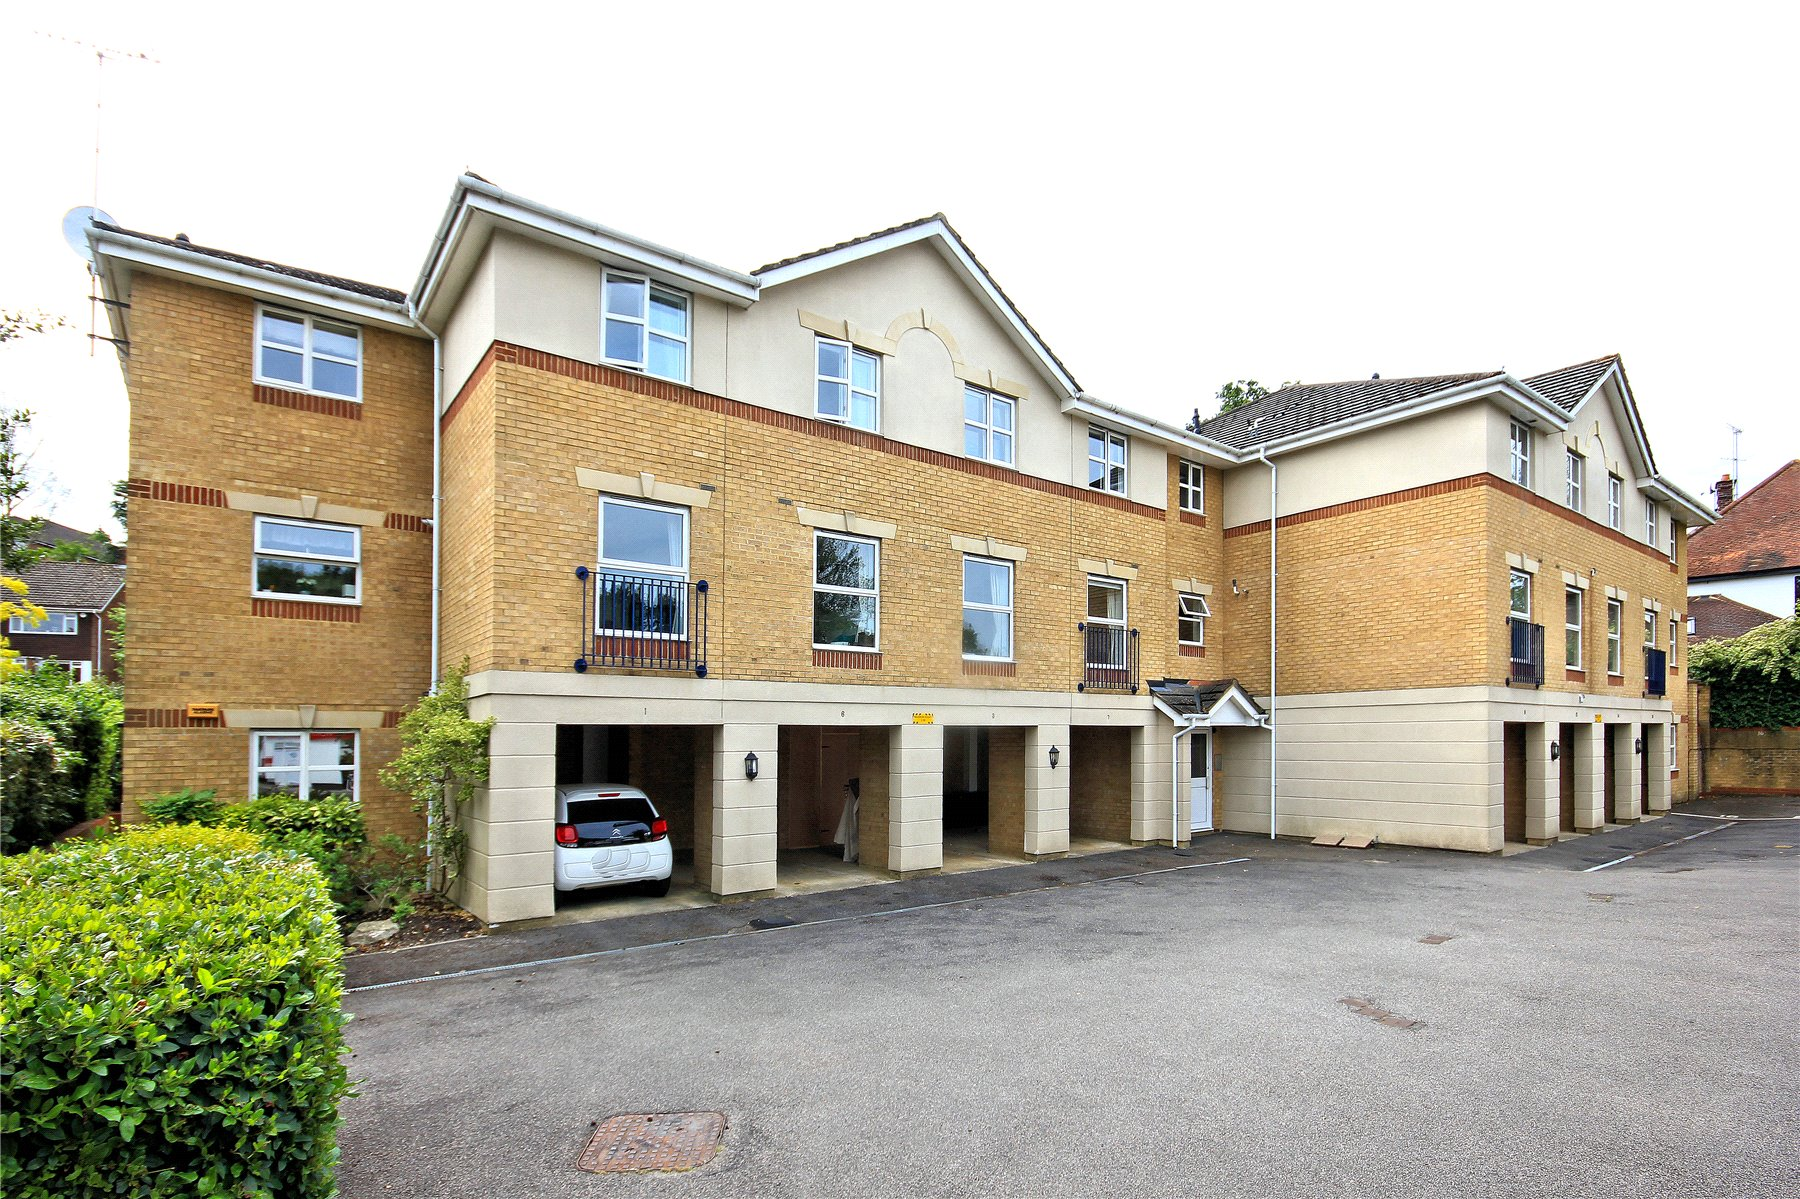 2 Bedrooms Retirement Property for sale in St Johns Gardens, St Johns Road, Woking, Surrey, GU21